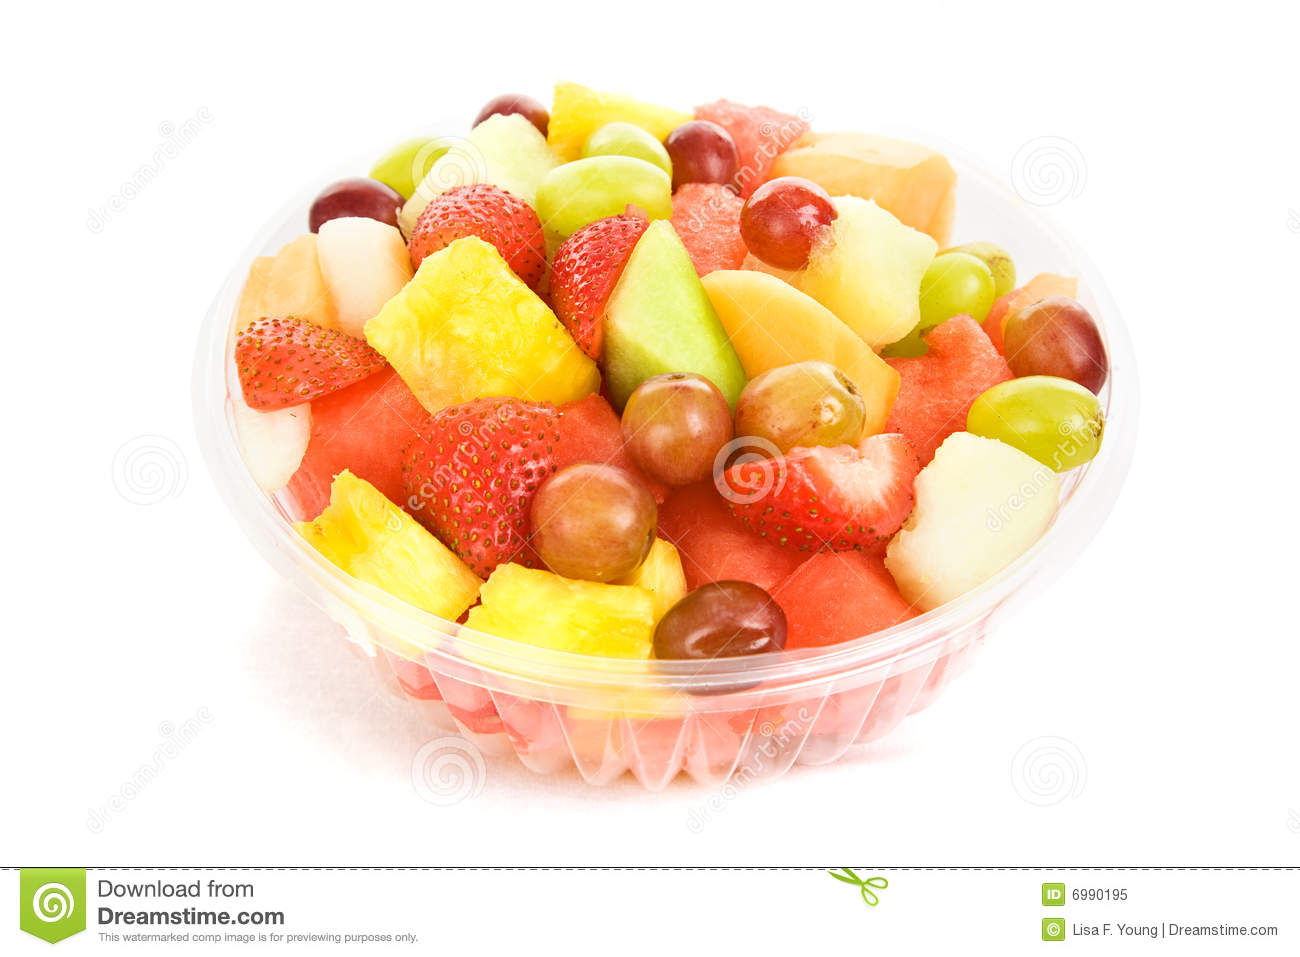 Download Fruit Salad Bowl stock image. Image of juicy, delicious - 6990195